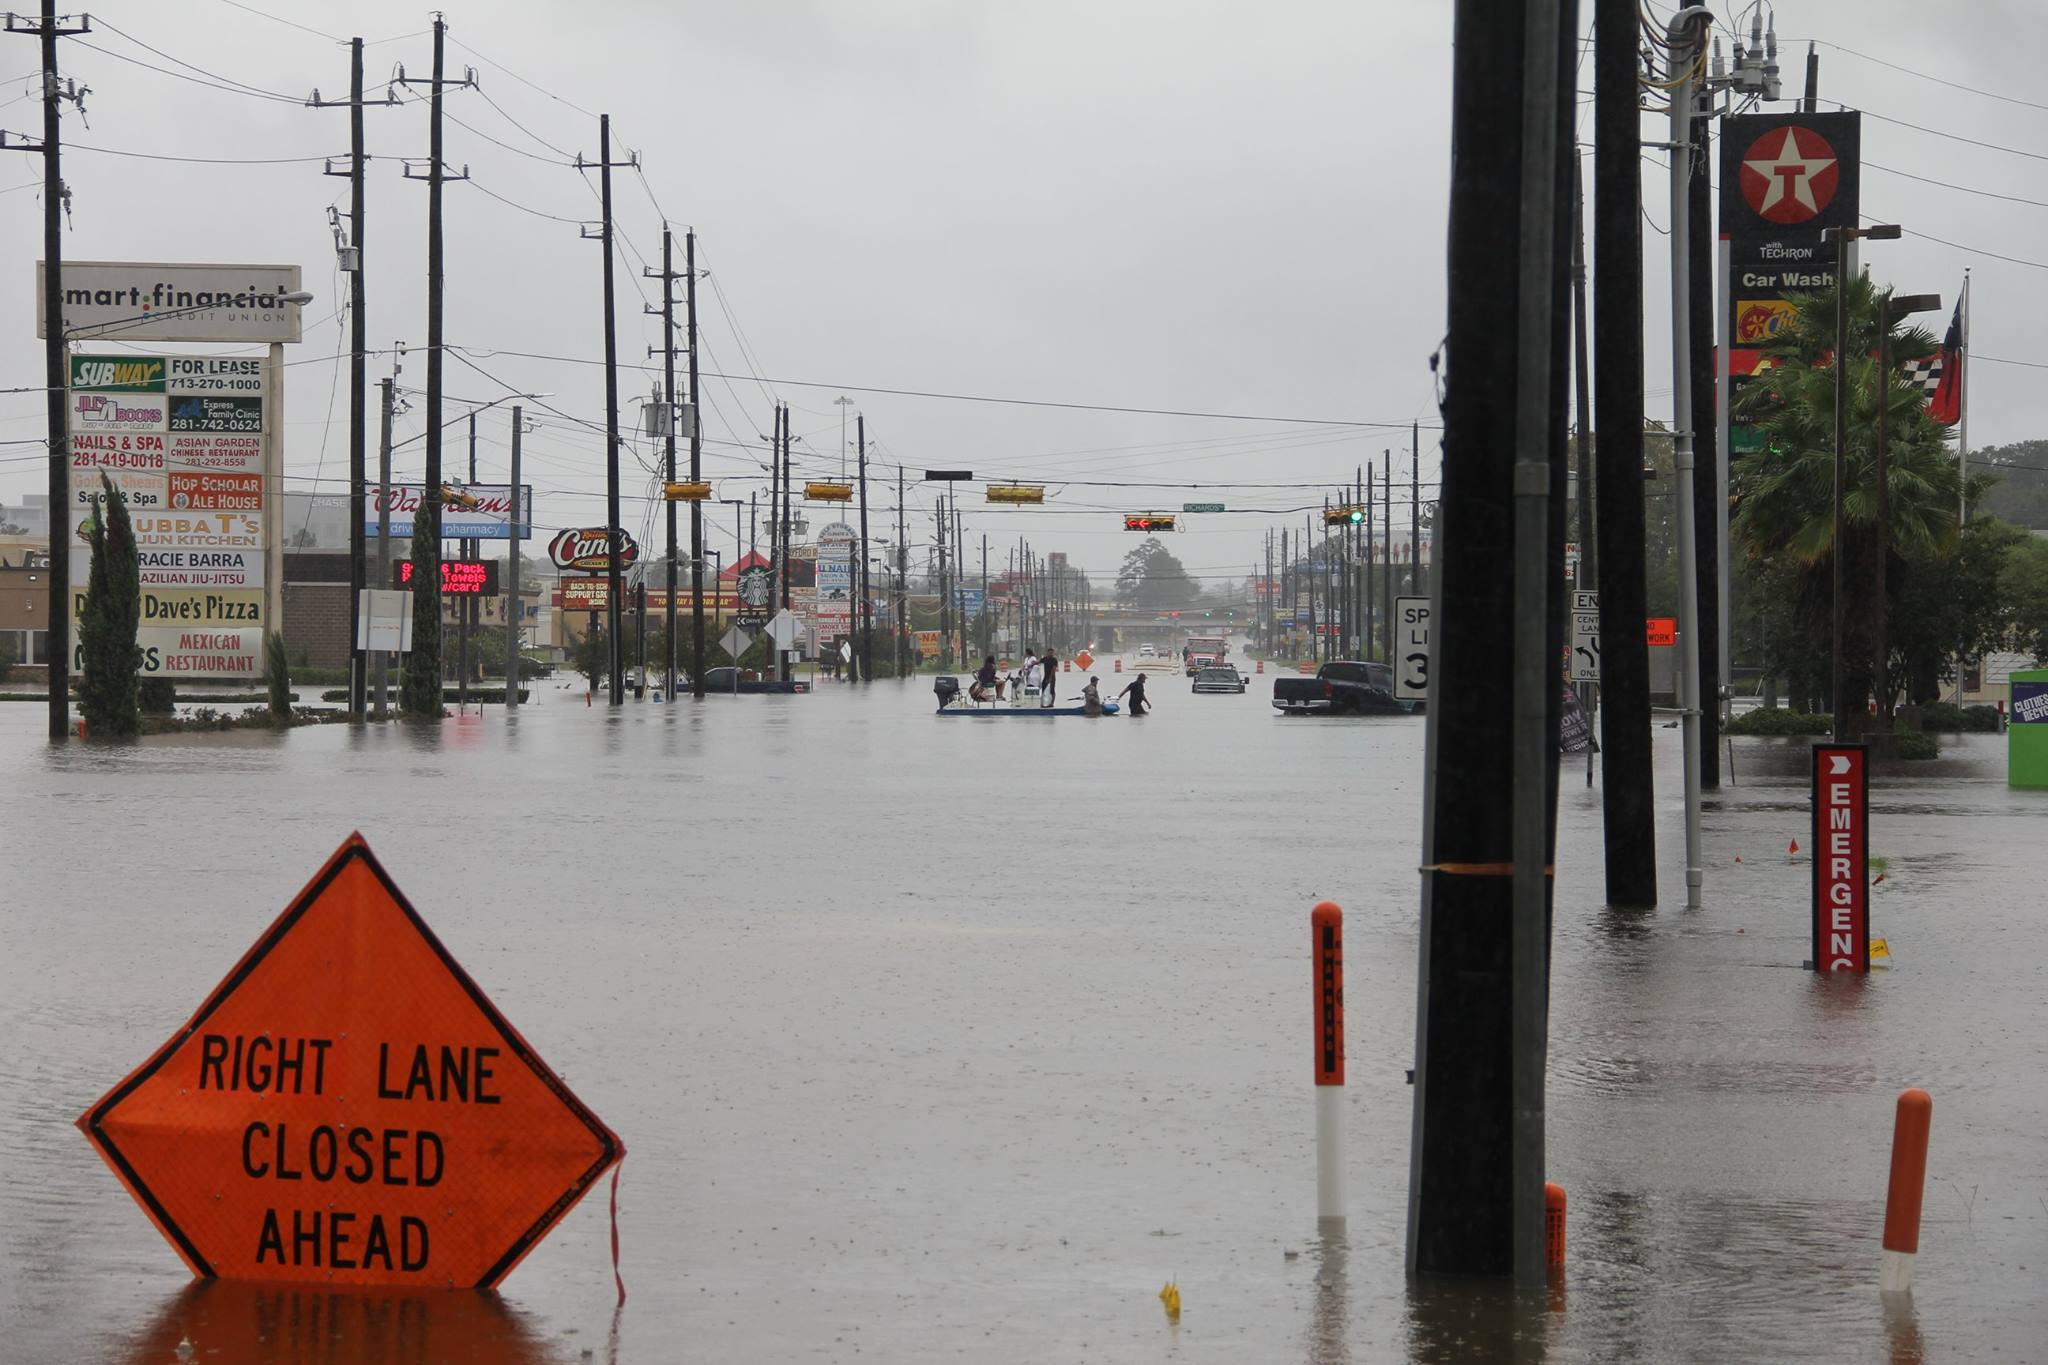 A view of the street in front of the Houston office